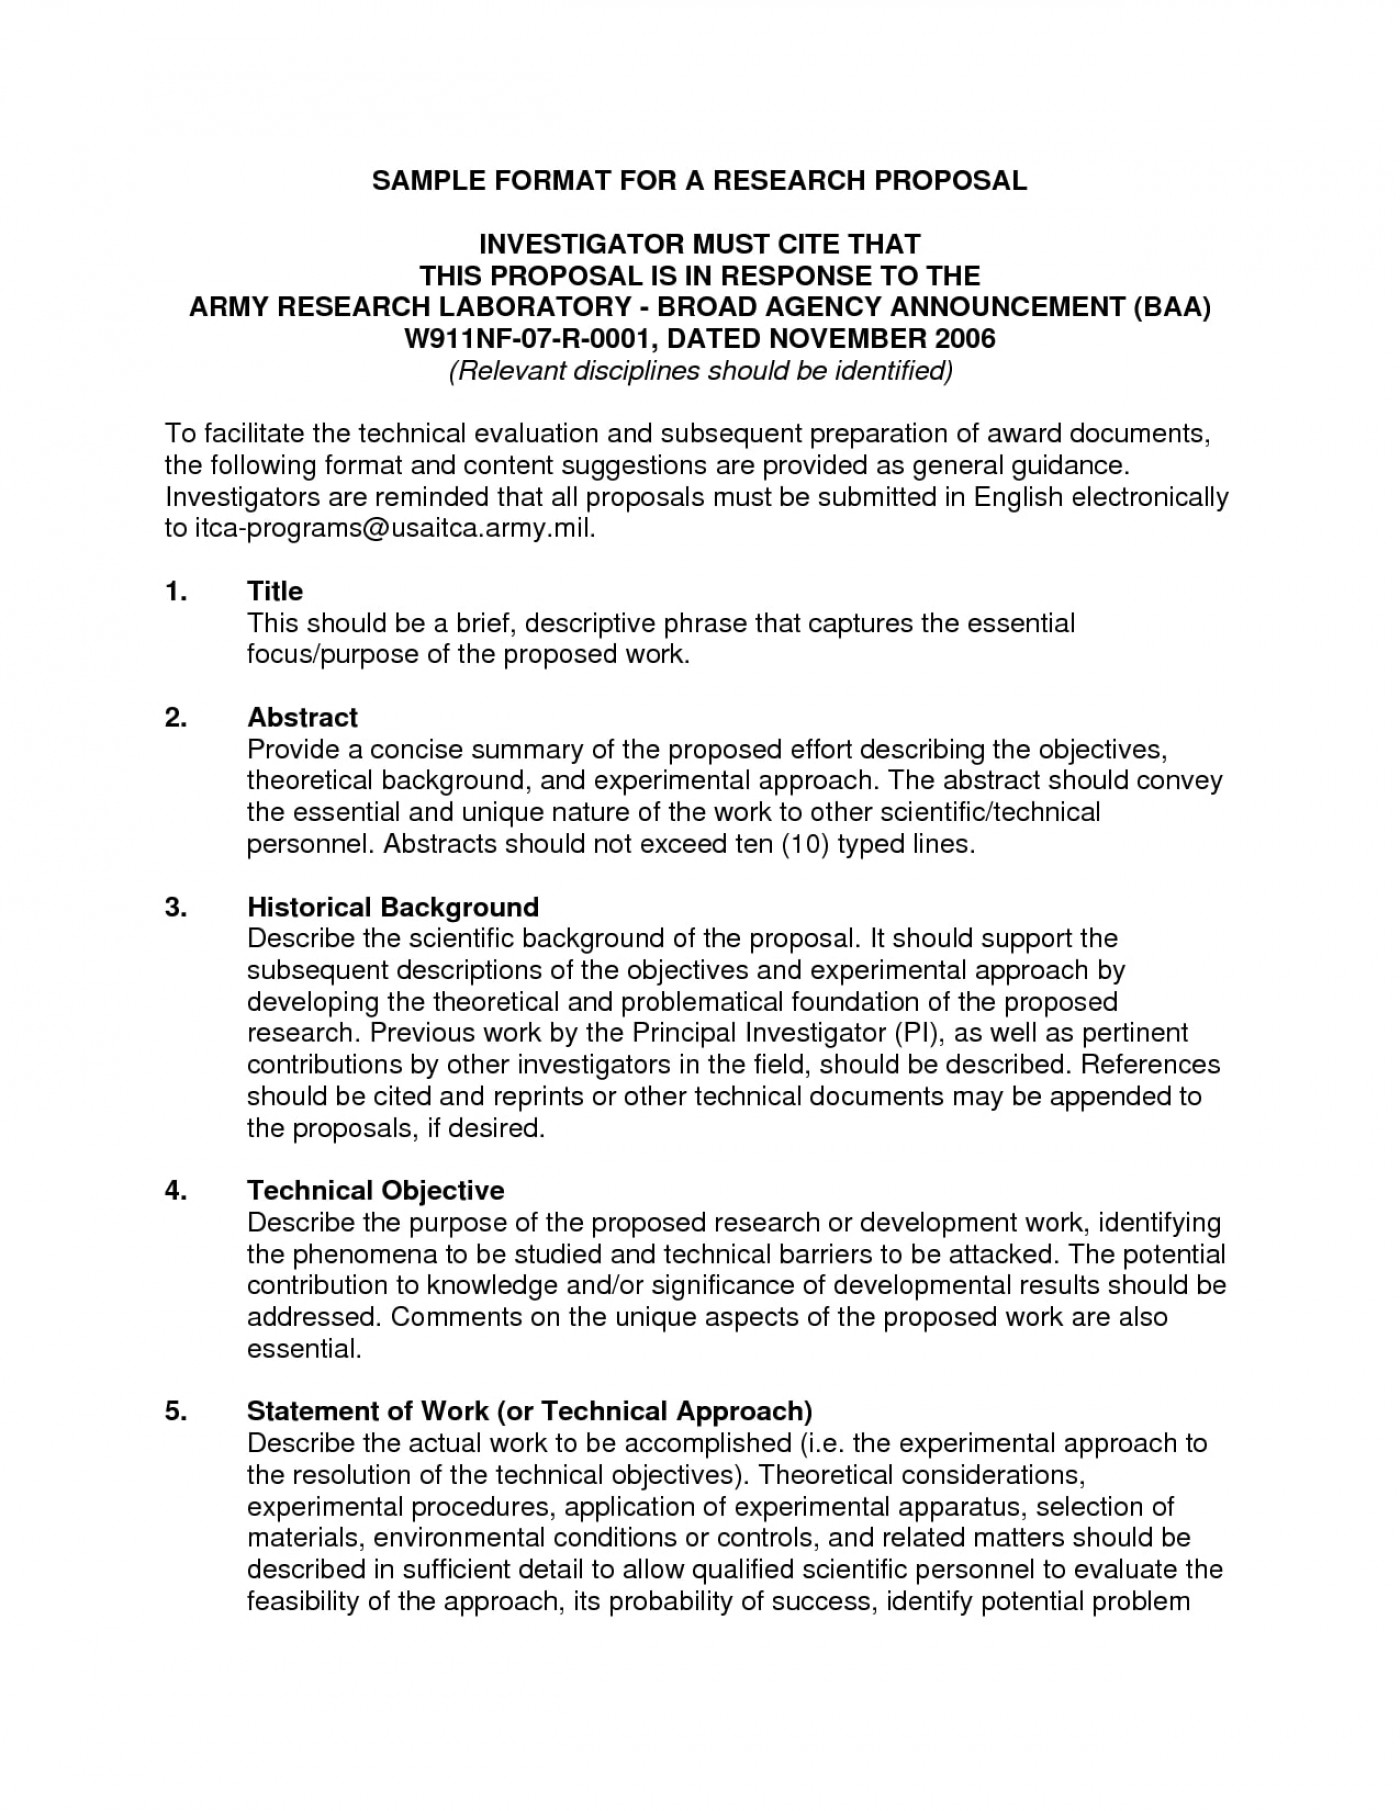 003 6781019586 Action Research Proposal Sample Pdf Paper How To Write Sensational Scientific And Publish A Computer Science 1400